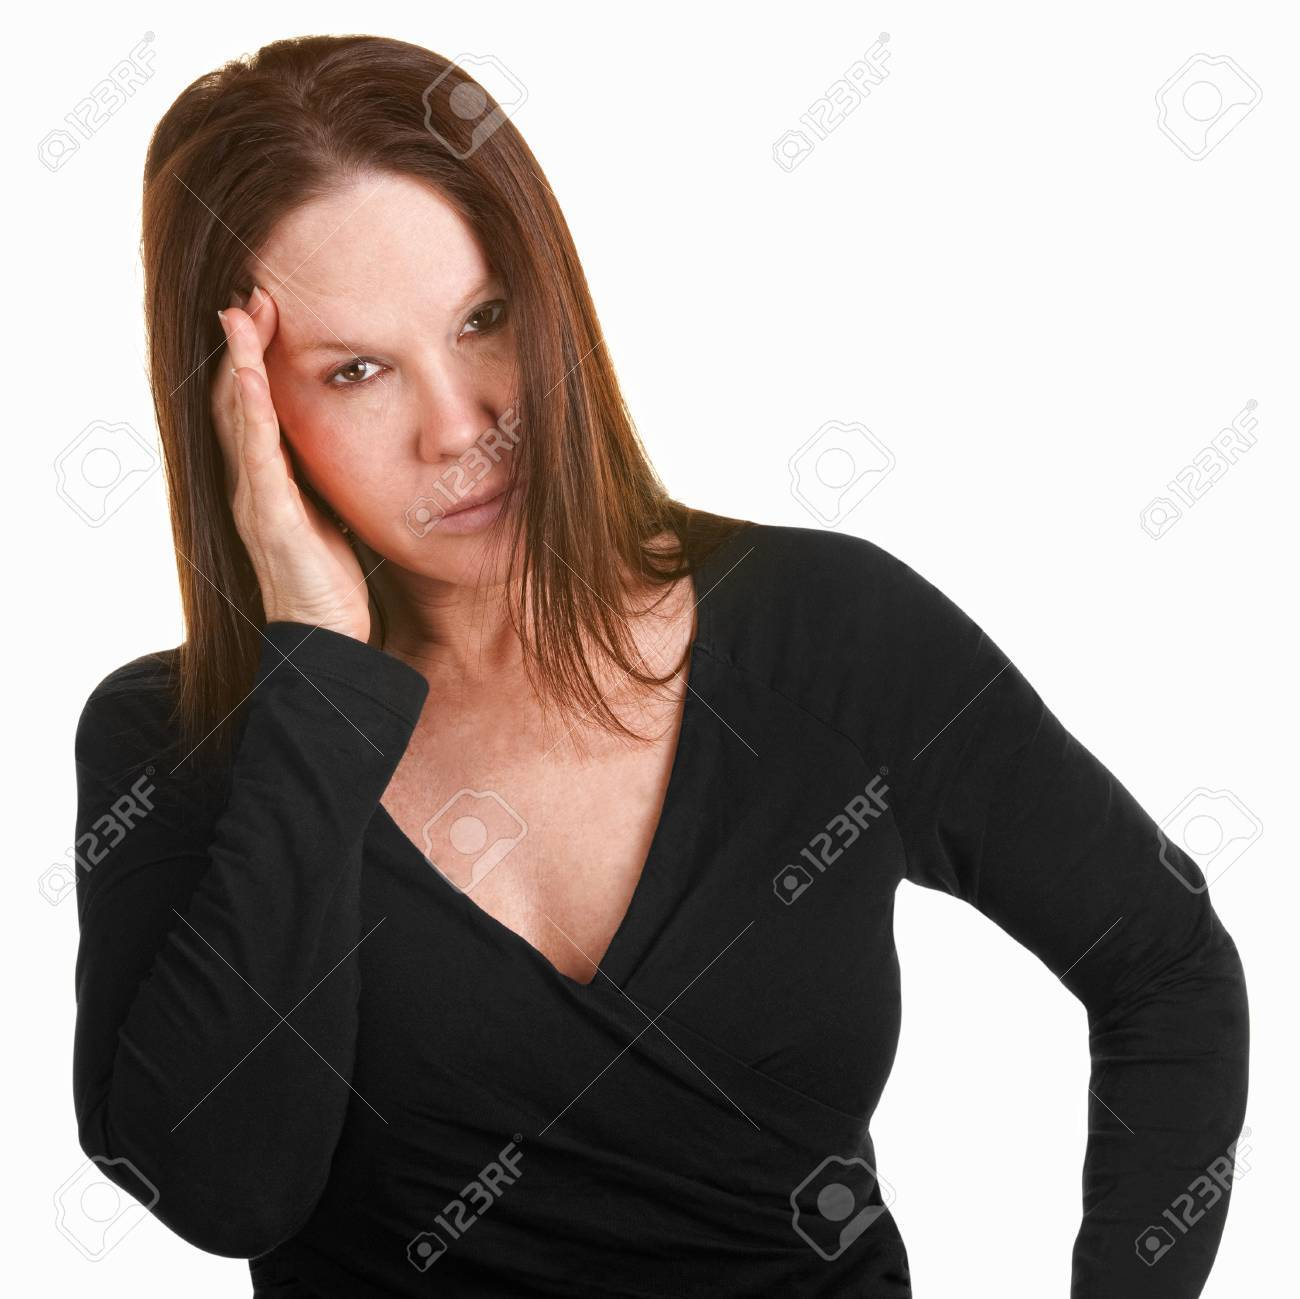 Unhappy European woman in black with hand on head Stock Photo - 15288957